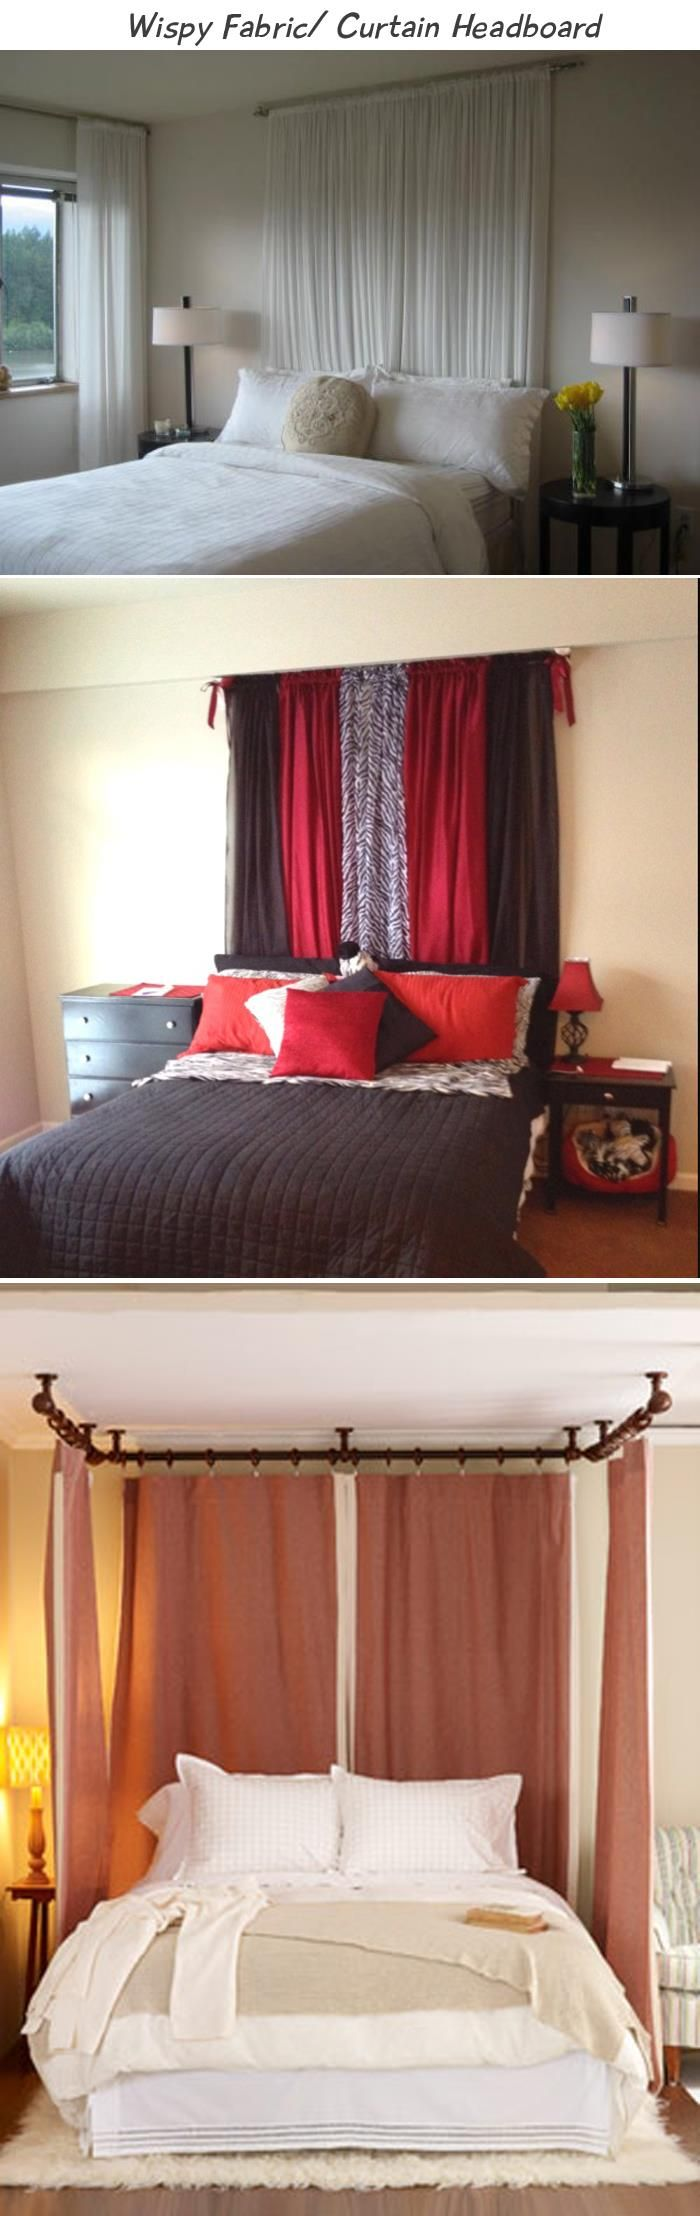 Best 25 Curtain Headboards Ideas On Pinterest Diy